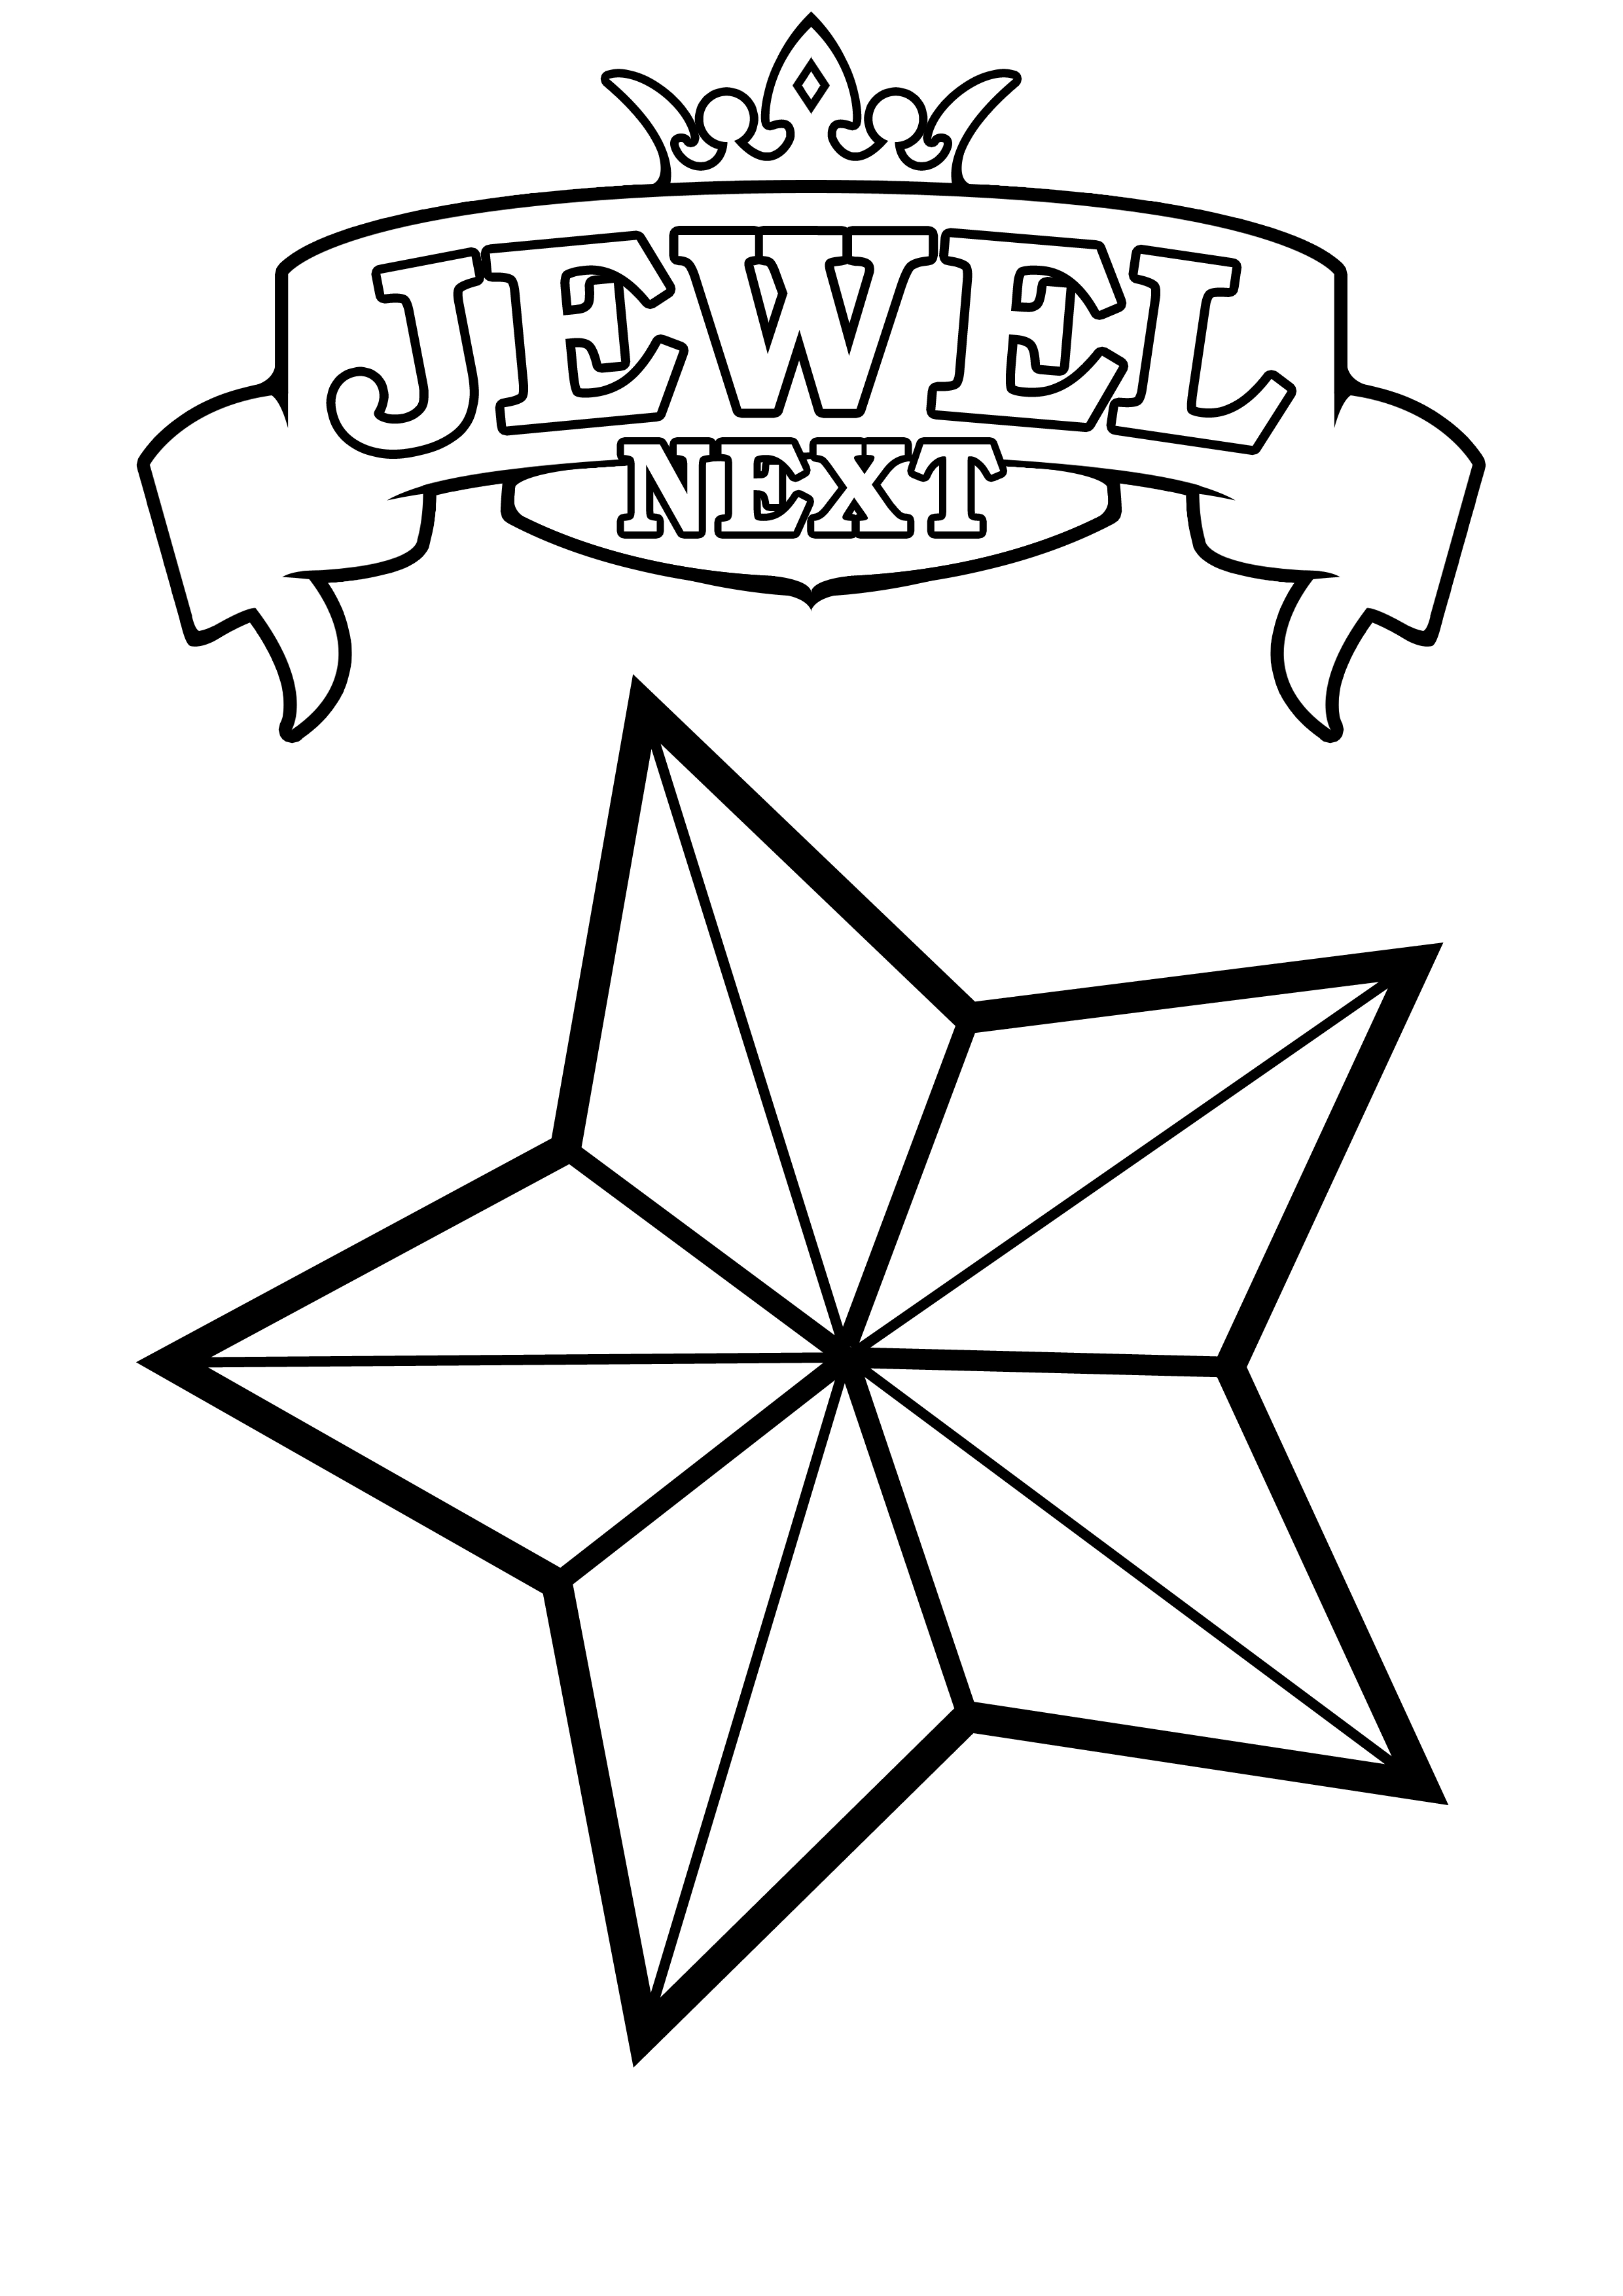 Stars Coloring Pages Free Printable Star Coloring Pages For Kids - Free Printable Stars